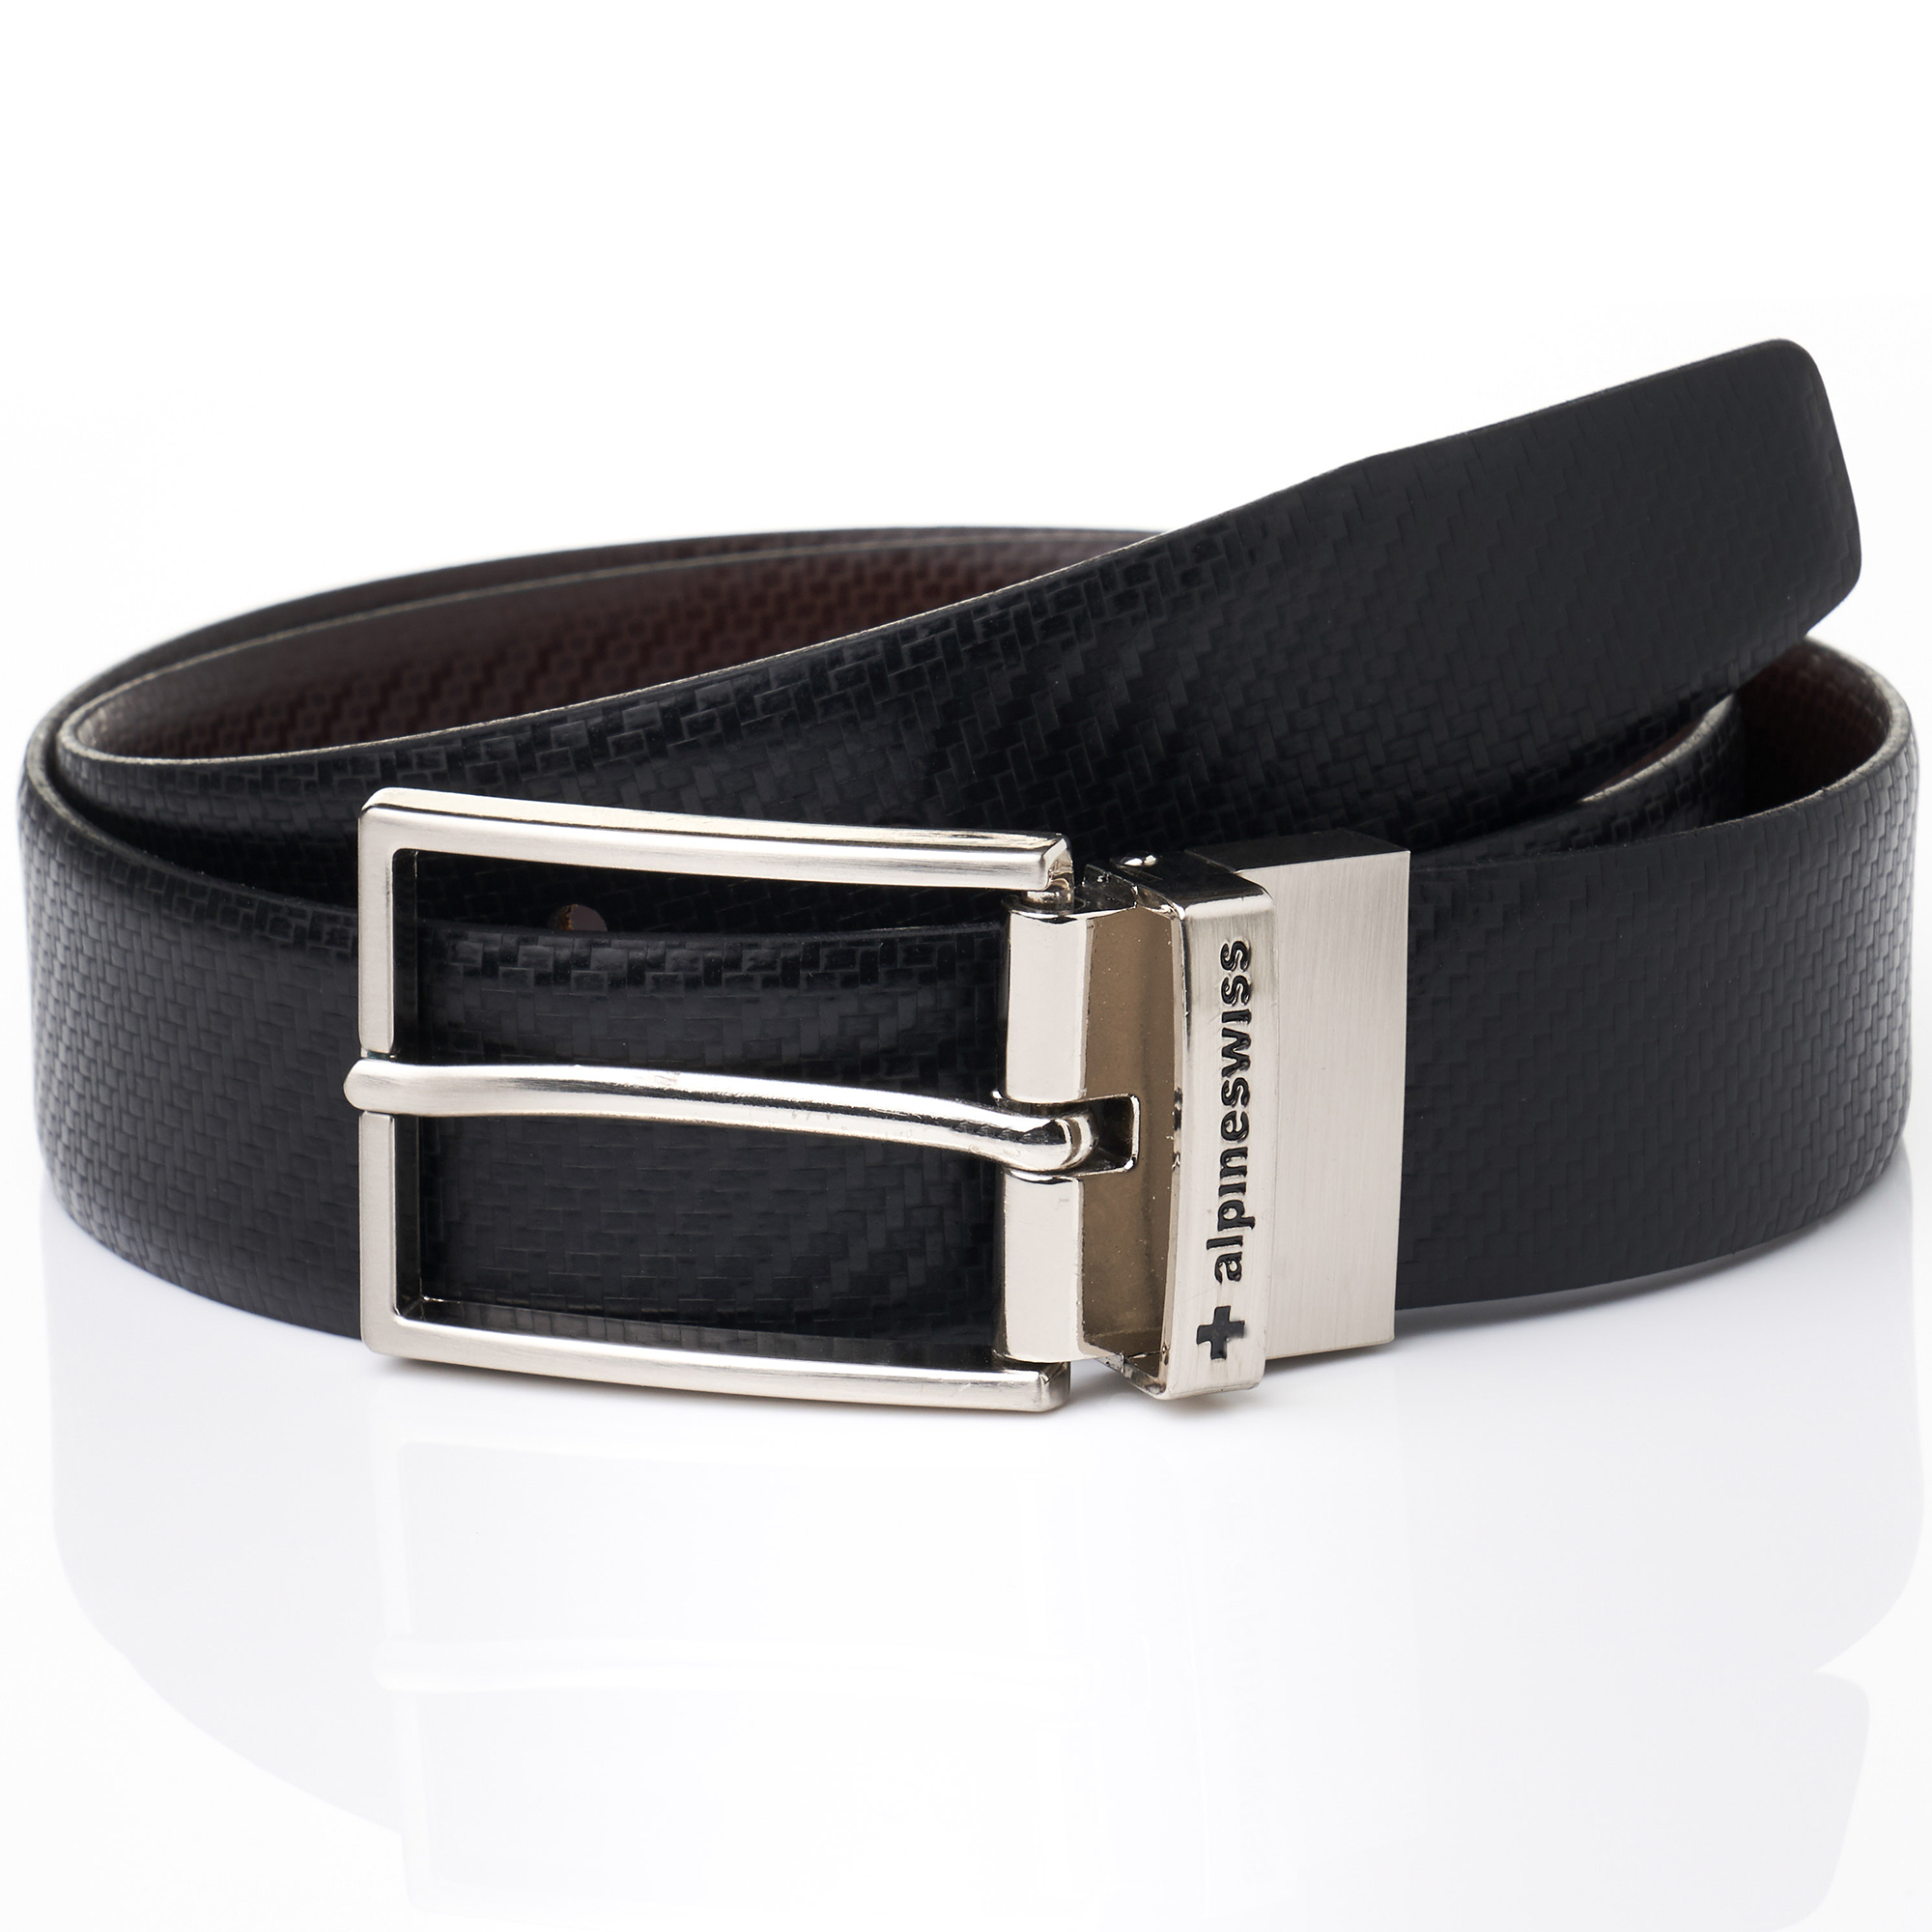 Alpine-Swiss-Mens-Dress-Belt-Reversible-Black-Brown-Leather-Imported-from-Spain thumbnail 10